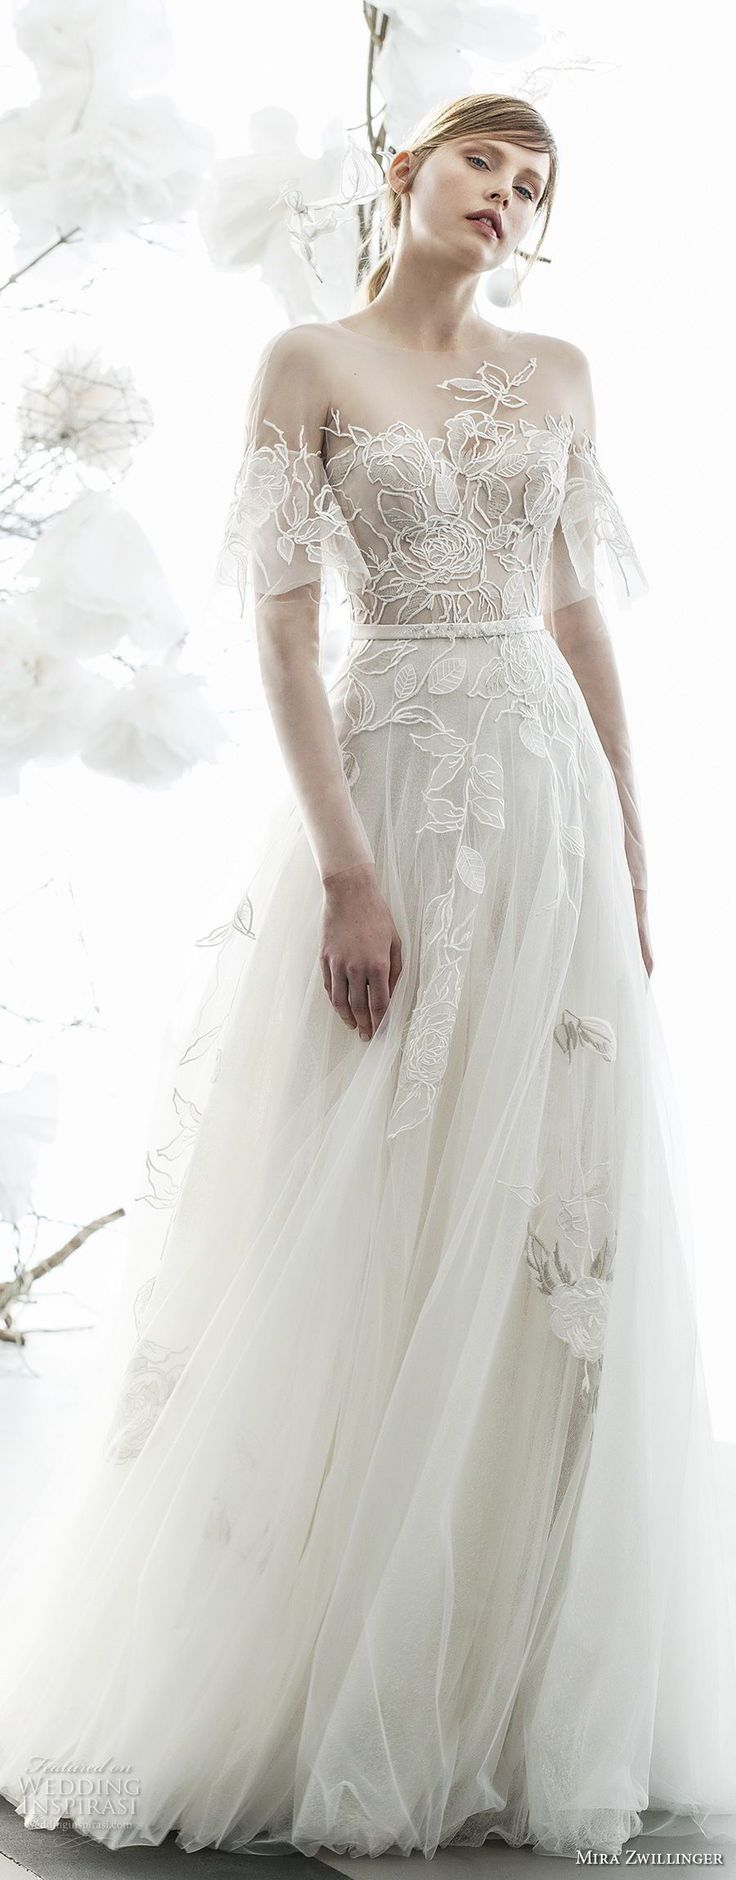 Mira Zwillinger 2018 Wedding Dresses - Wedding over the rainbow illing Bridal Collection